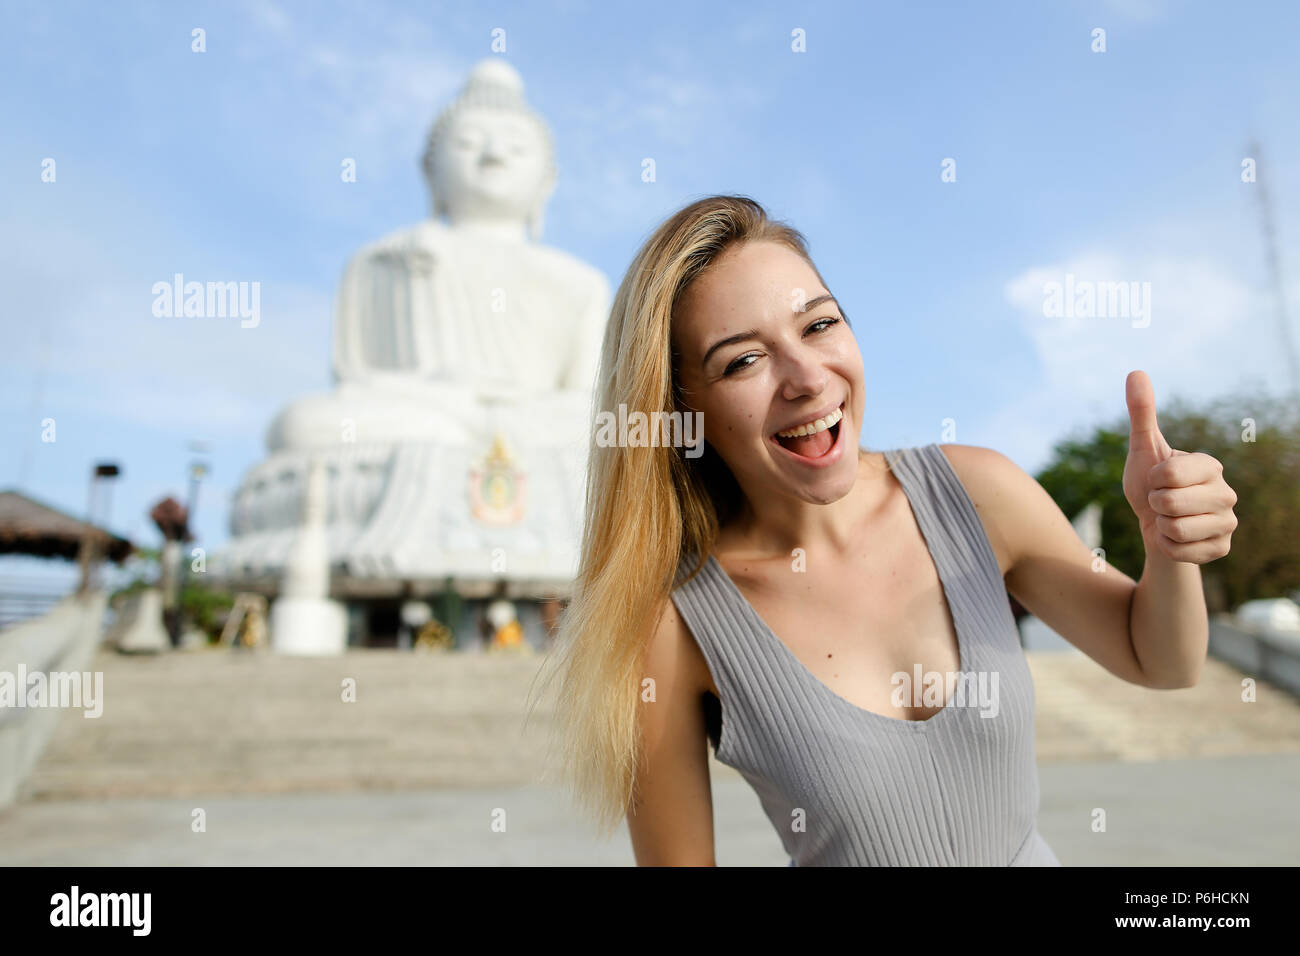 Young smiling girl showing thumbs up, white Buddha statue in Phuket in background. - Stock Image